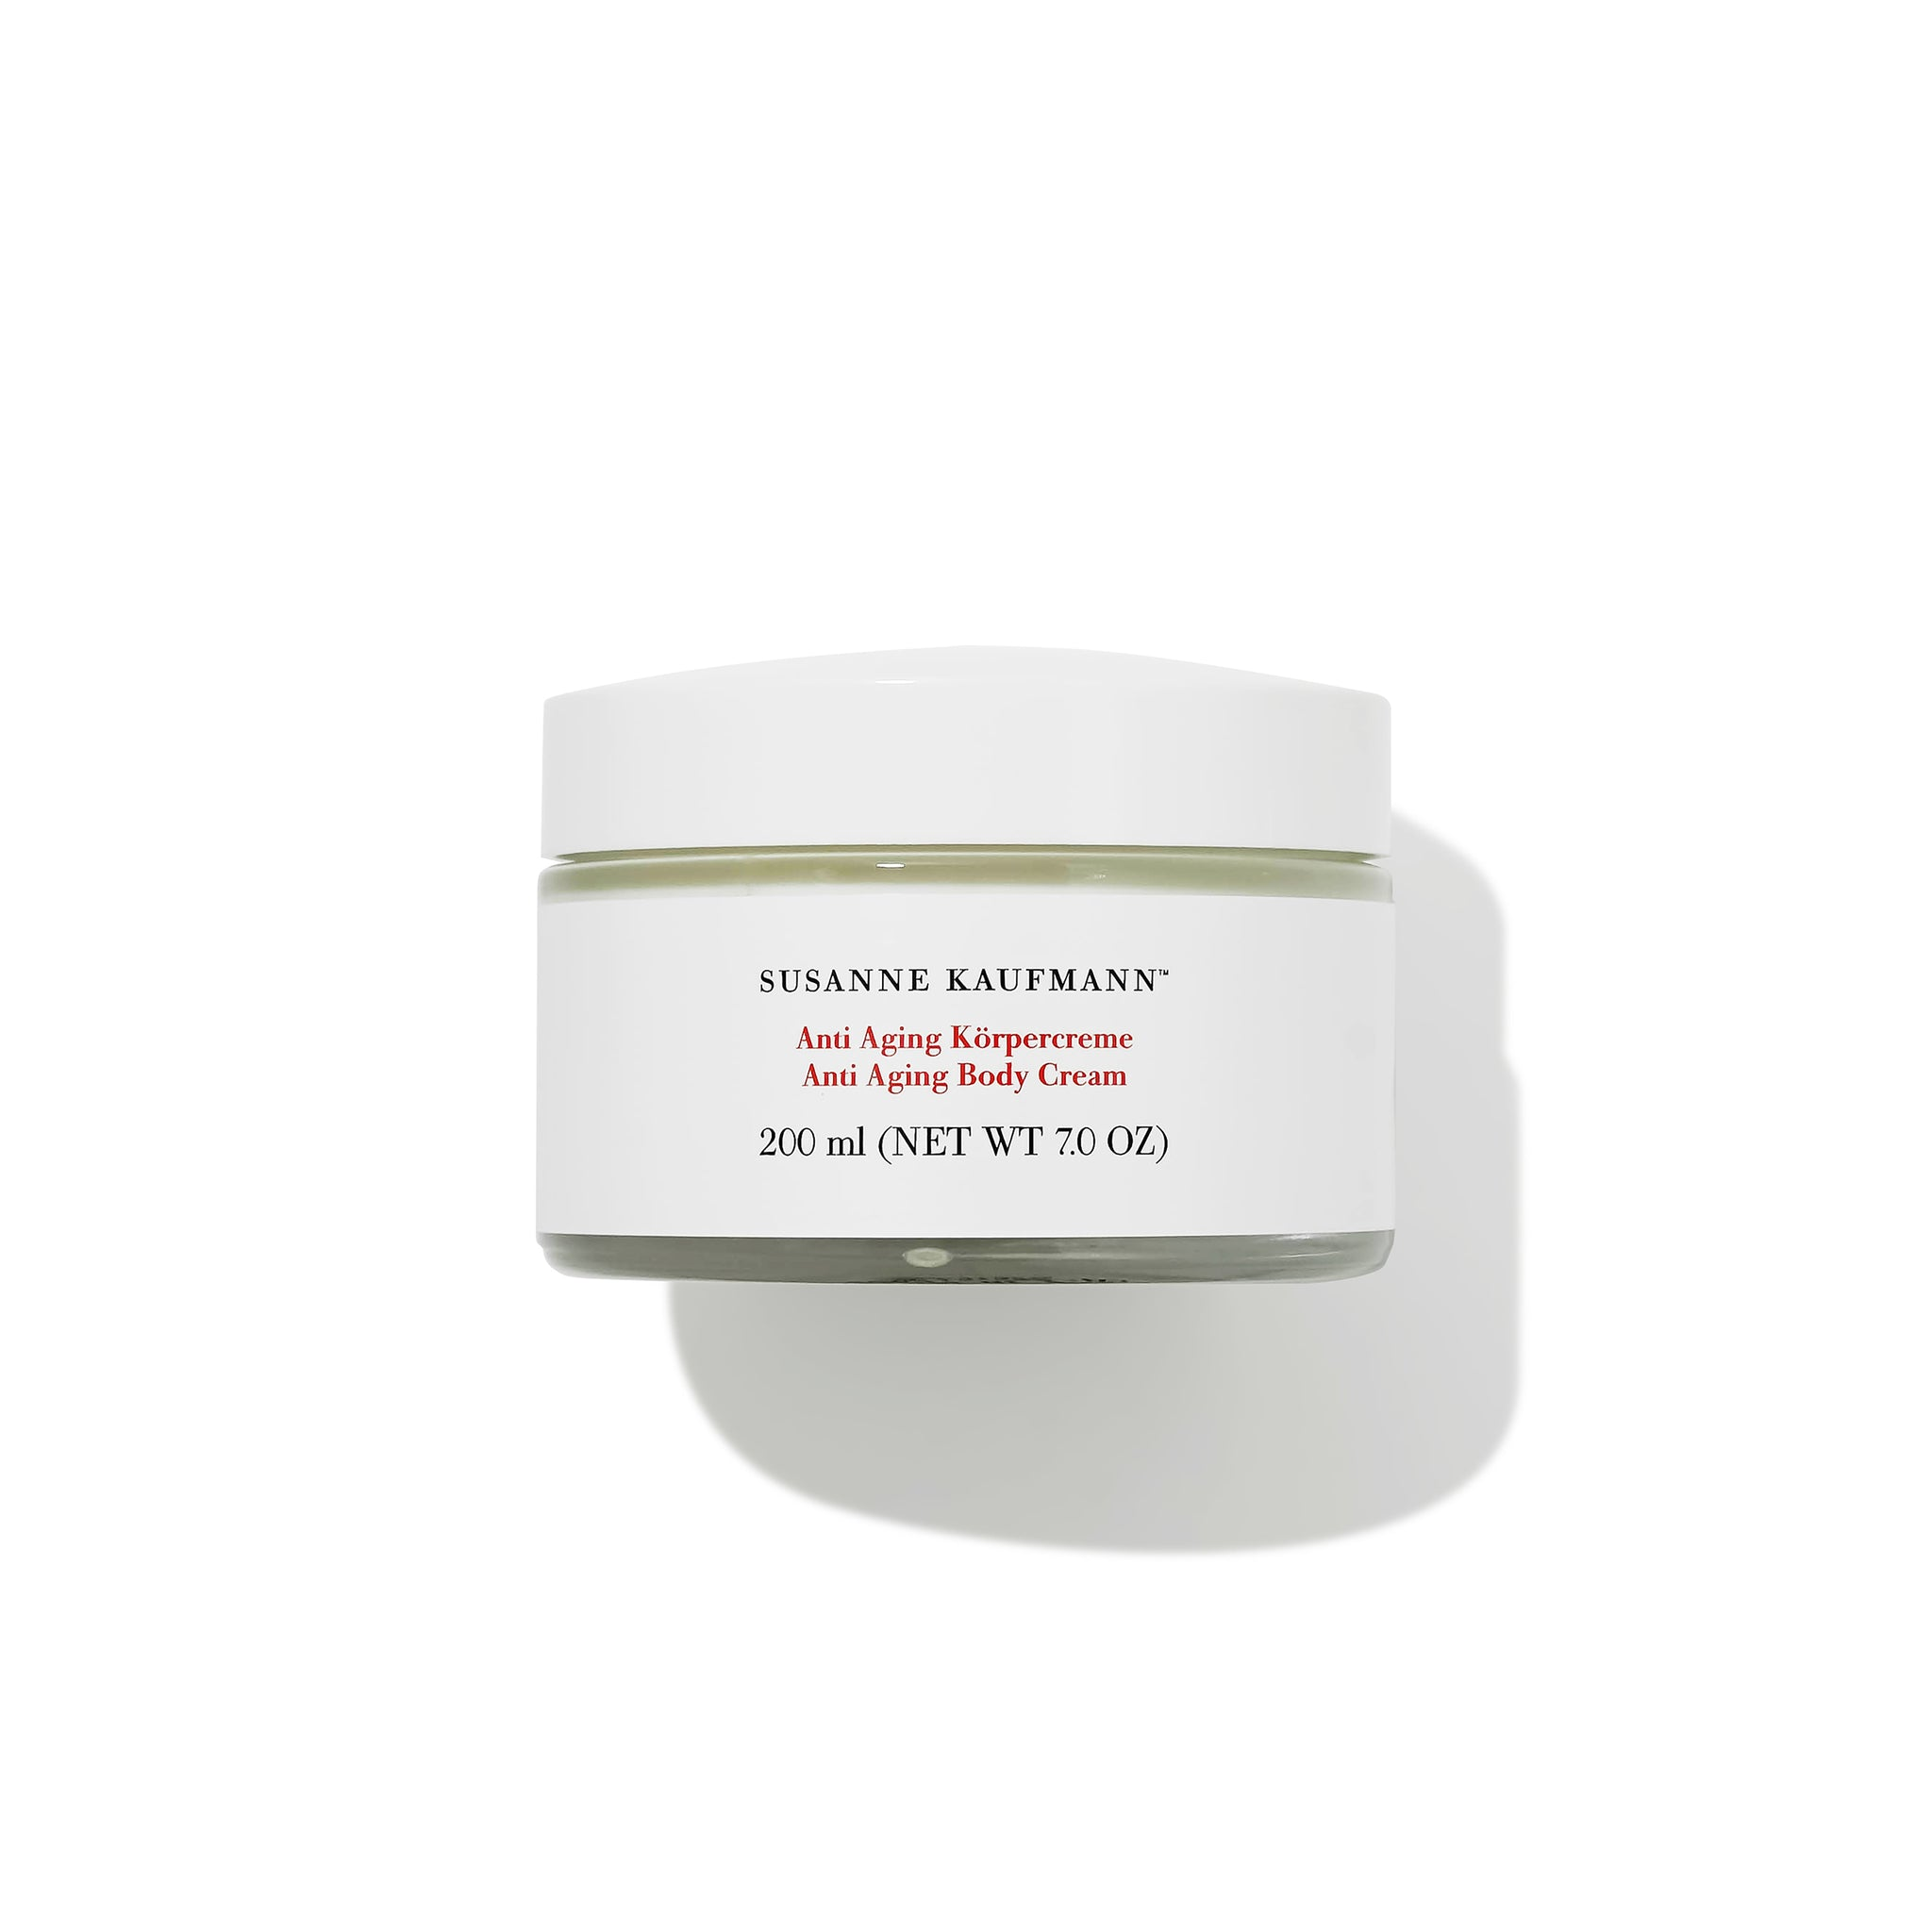 Anti Aging Body Cream